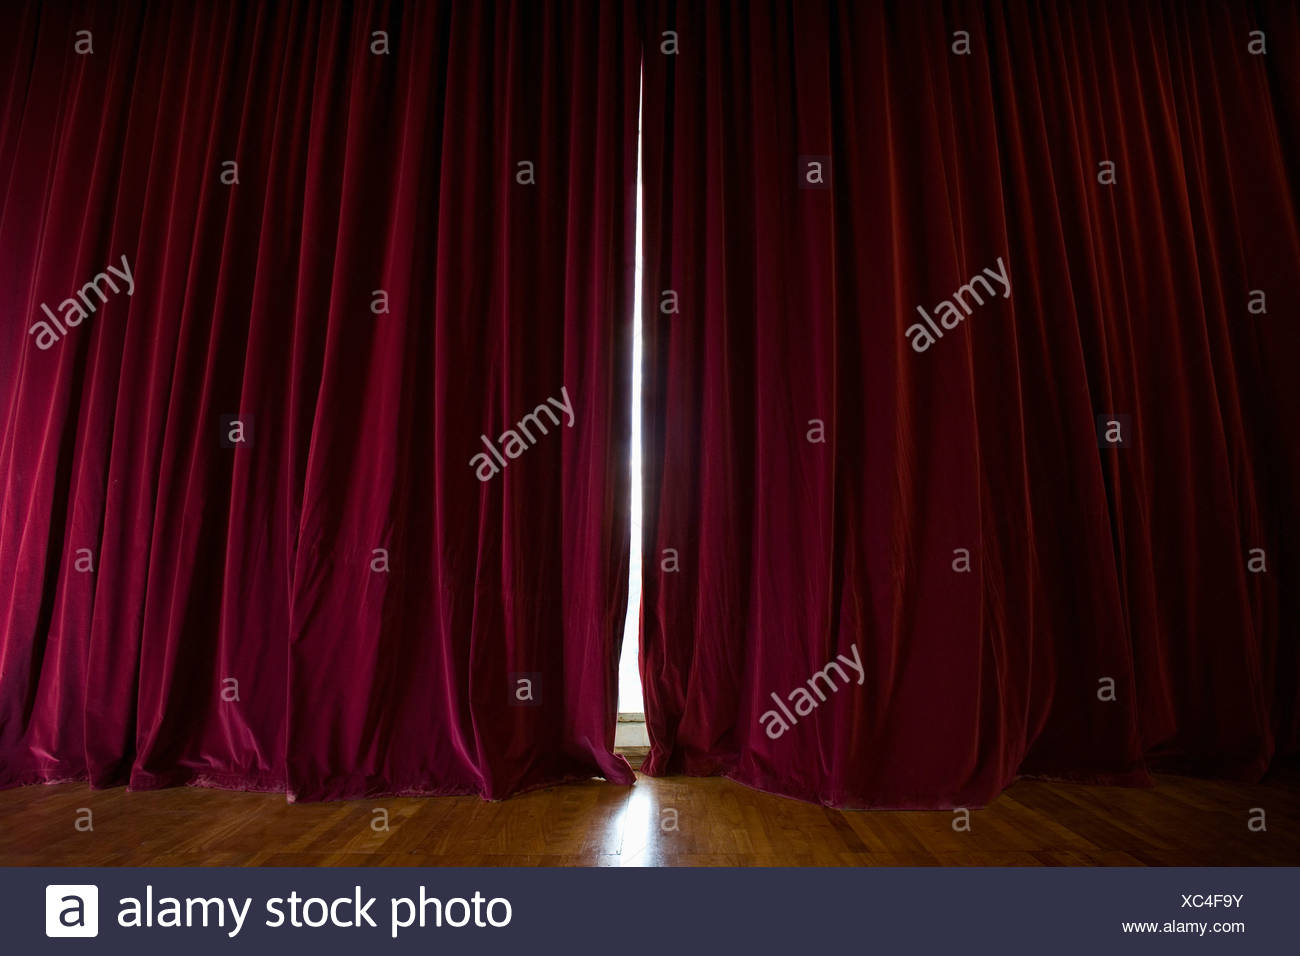 Stage curtains - Stock Image